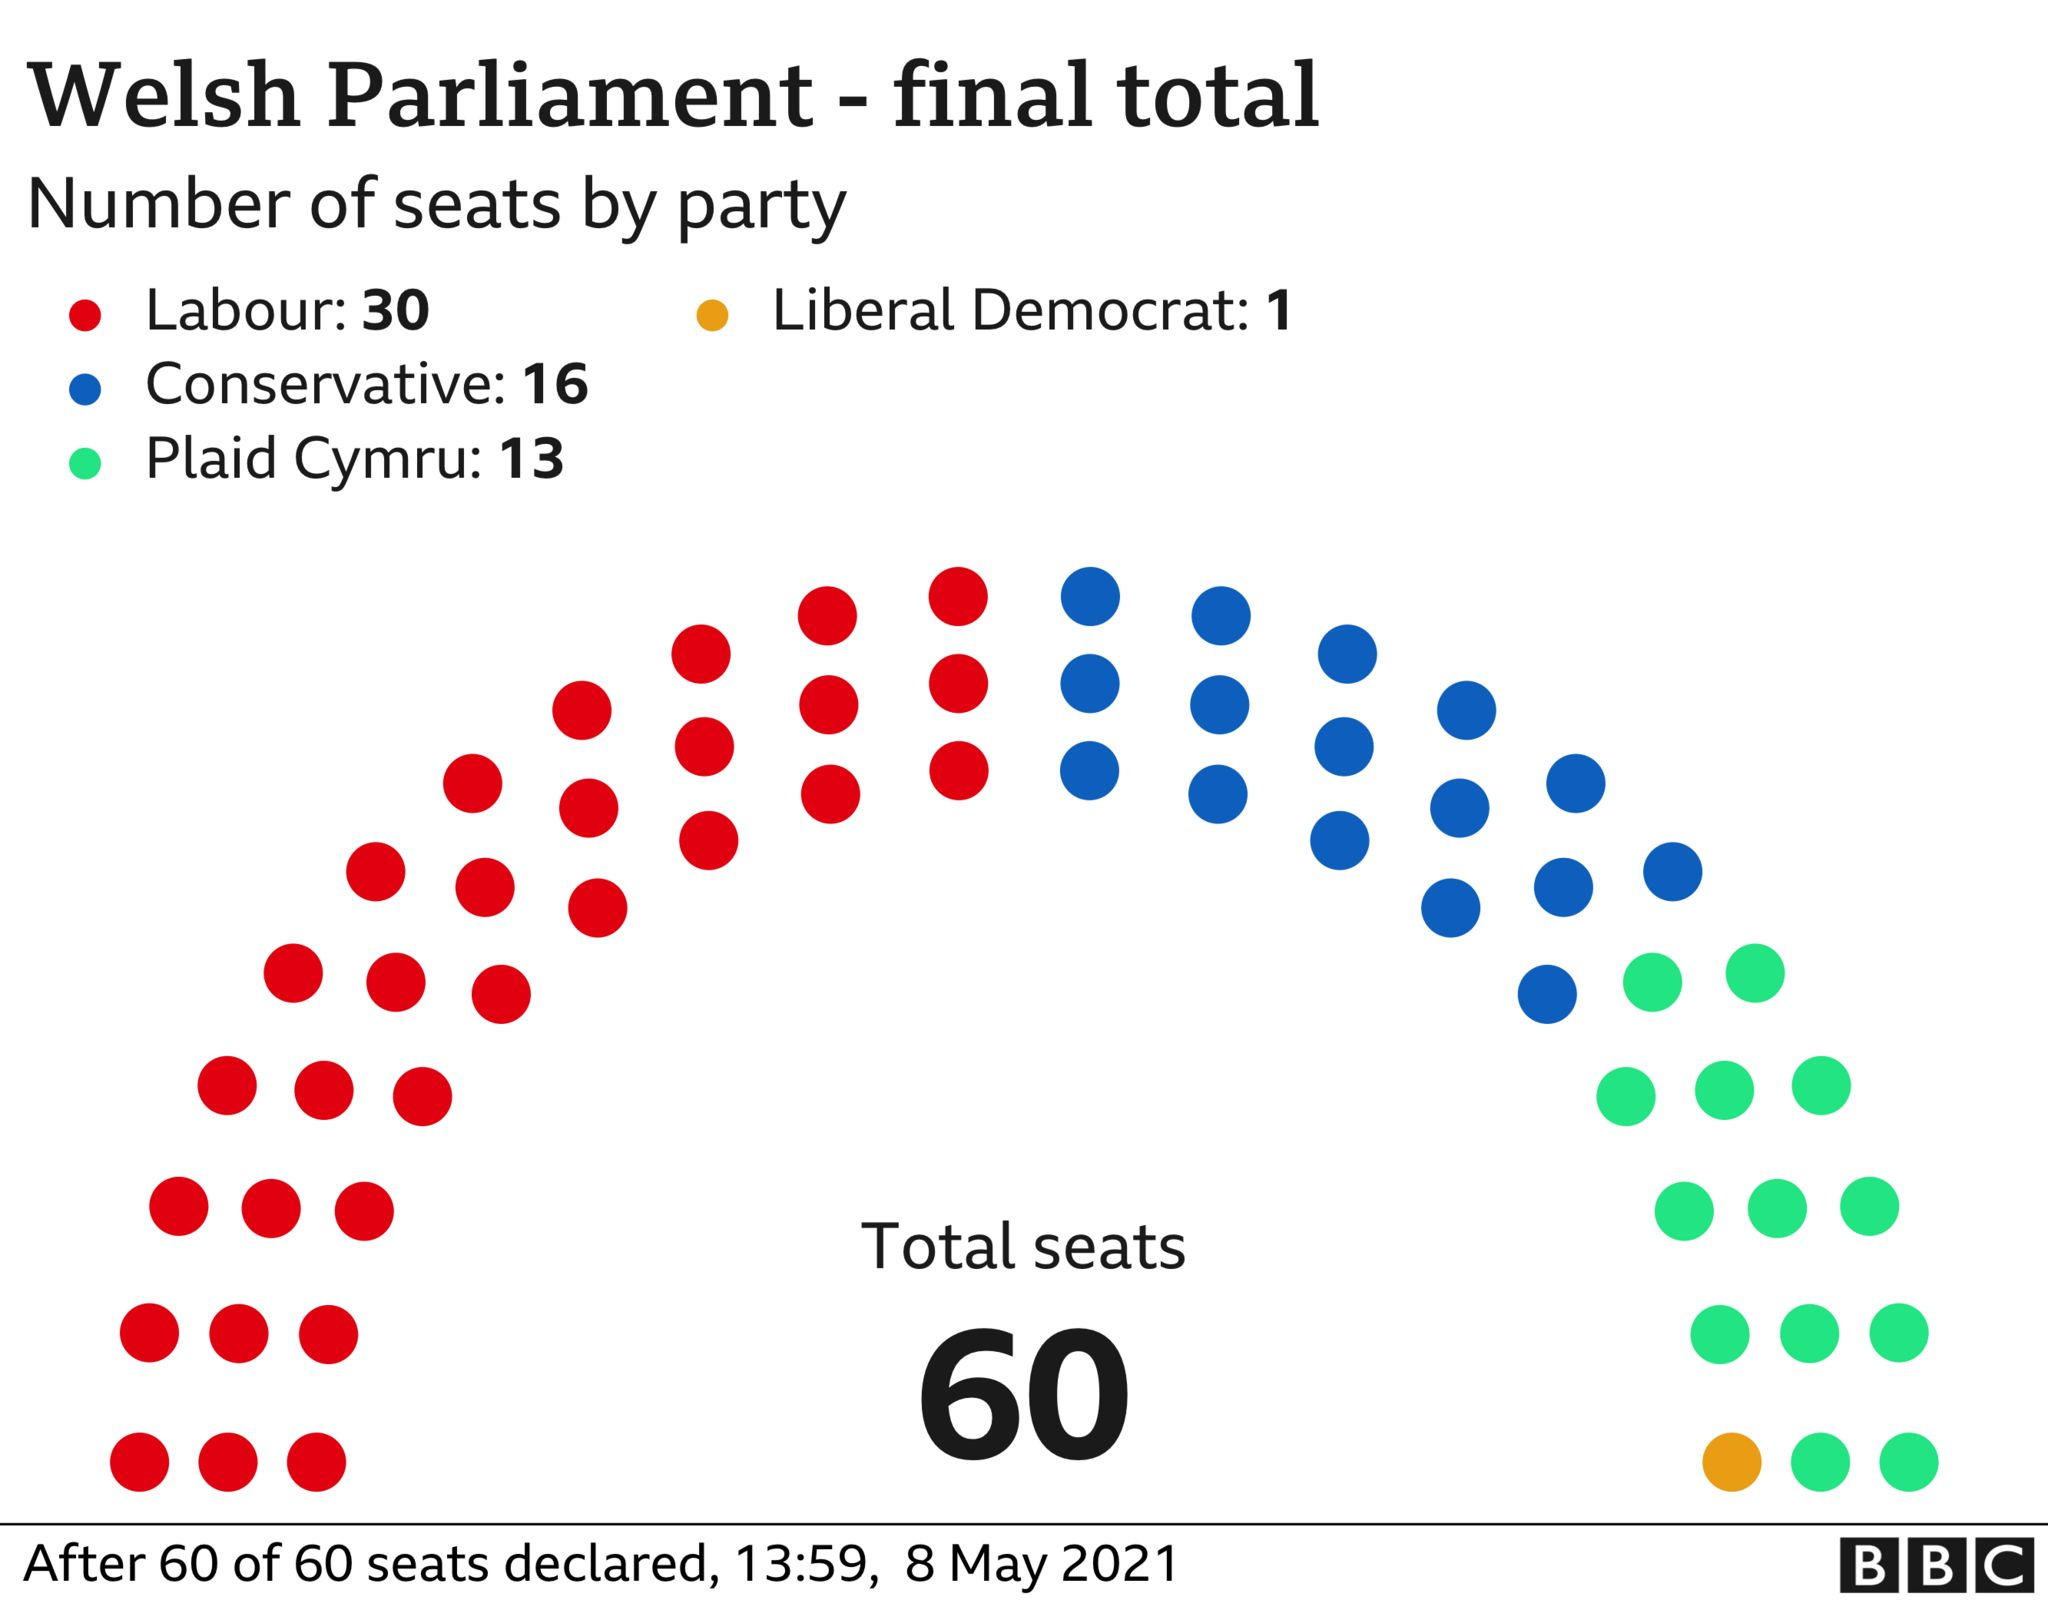 Graphic showing the total number of seats won by each party in Wales